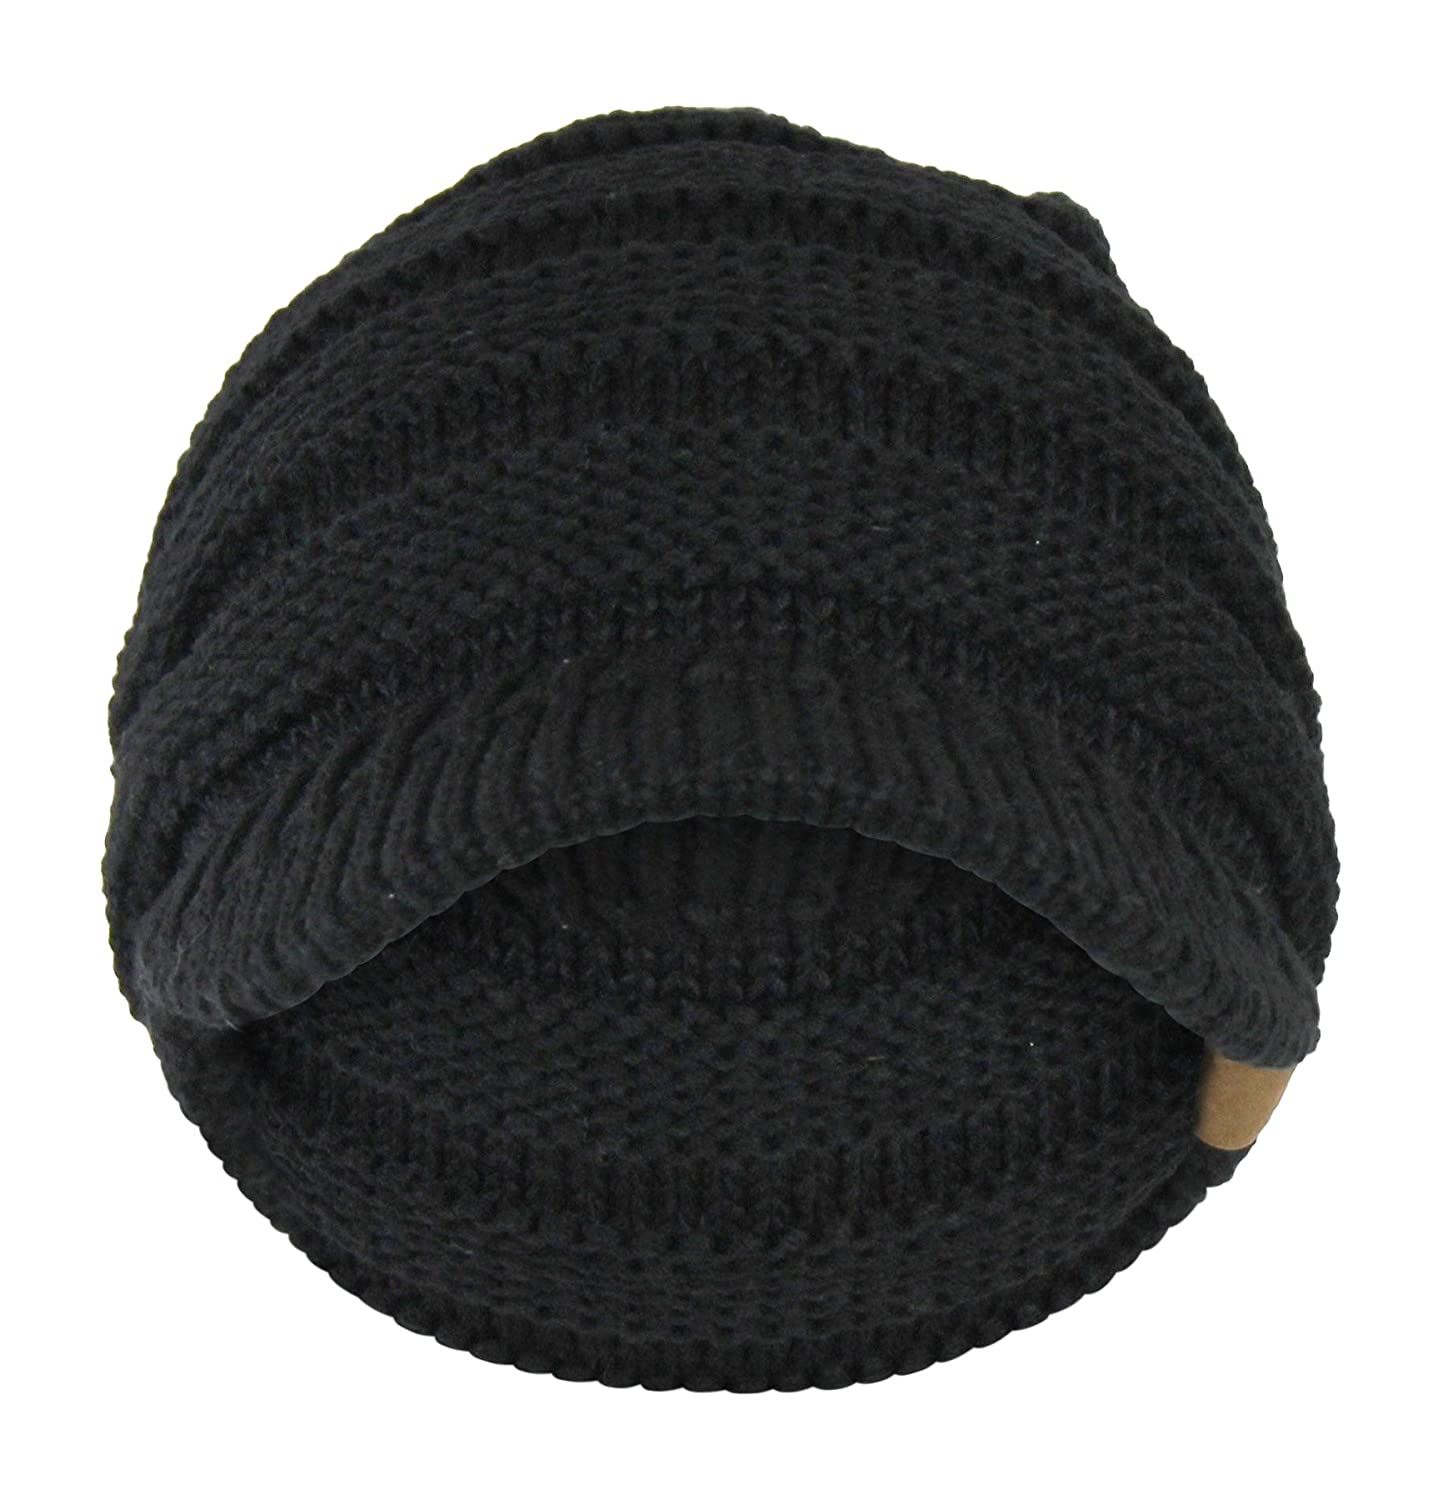 62f4f5e0135 Black Cable Ribbed Knit Beanie Hat w  Visor Brim - Chunky Winter Skully Cap  at Amazon Women s Clothing store